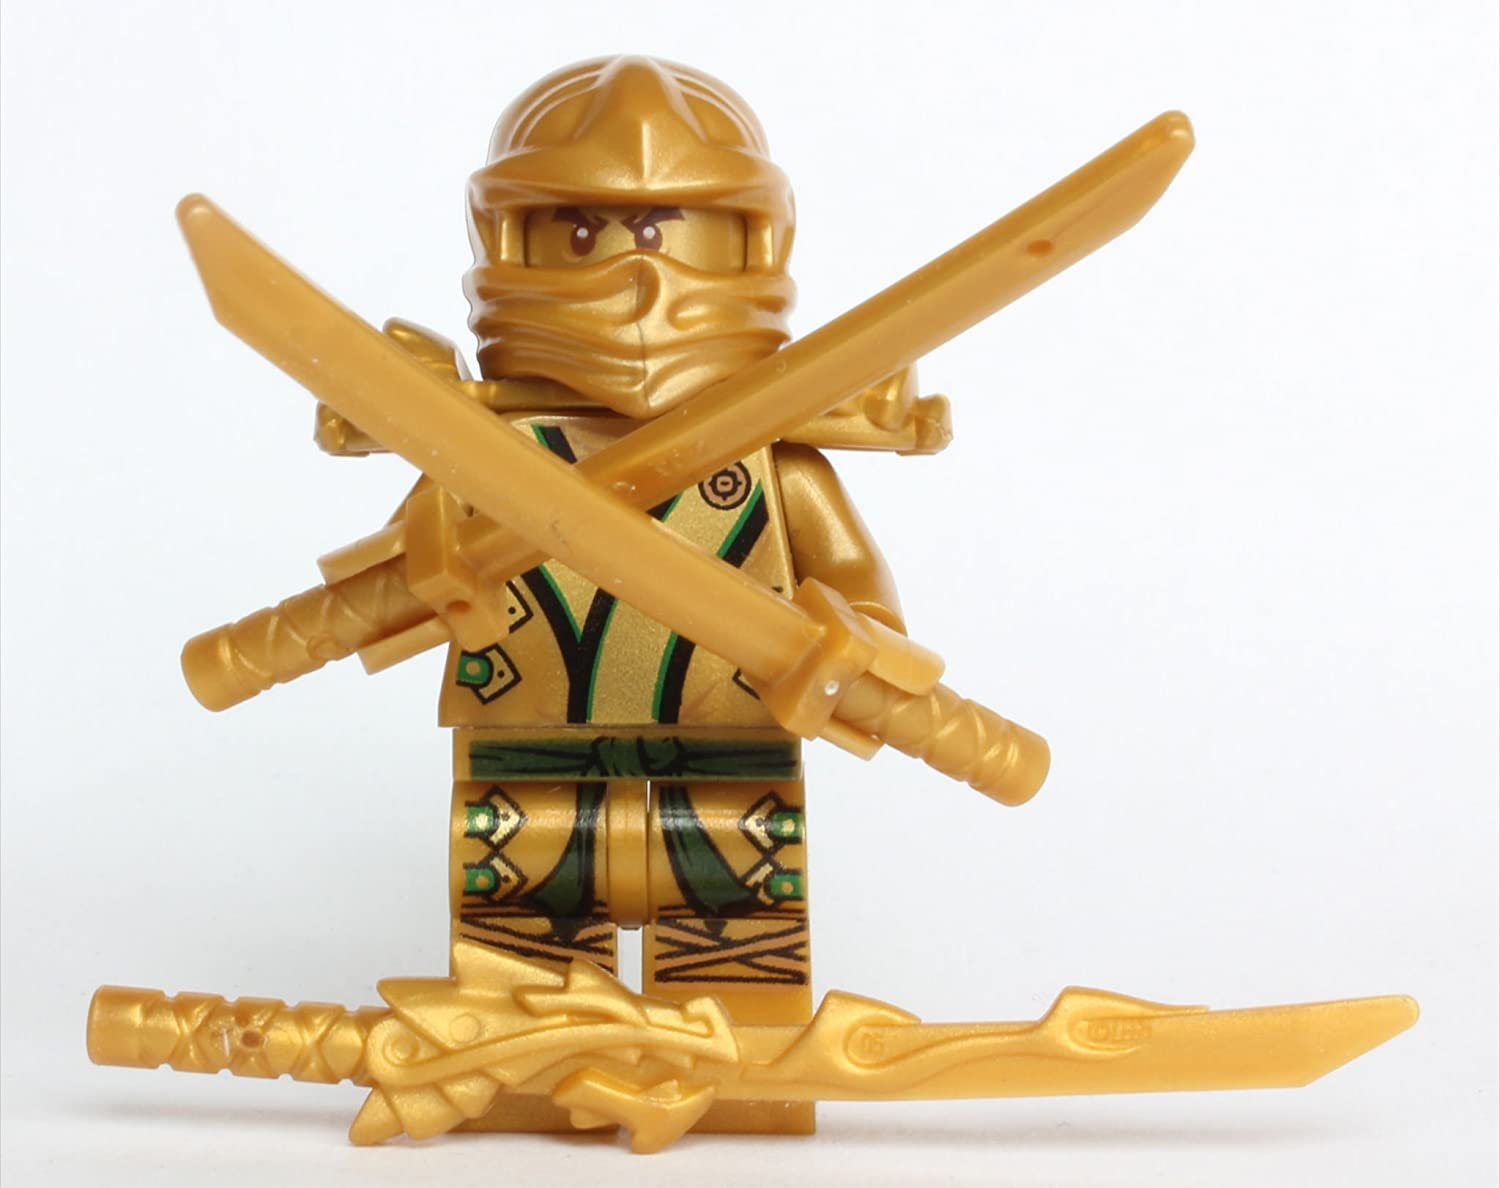 amazon com lego ninjago the gold ninja with 3 weapons toys u0026 games